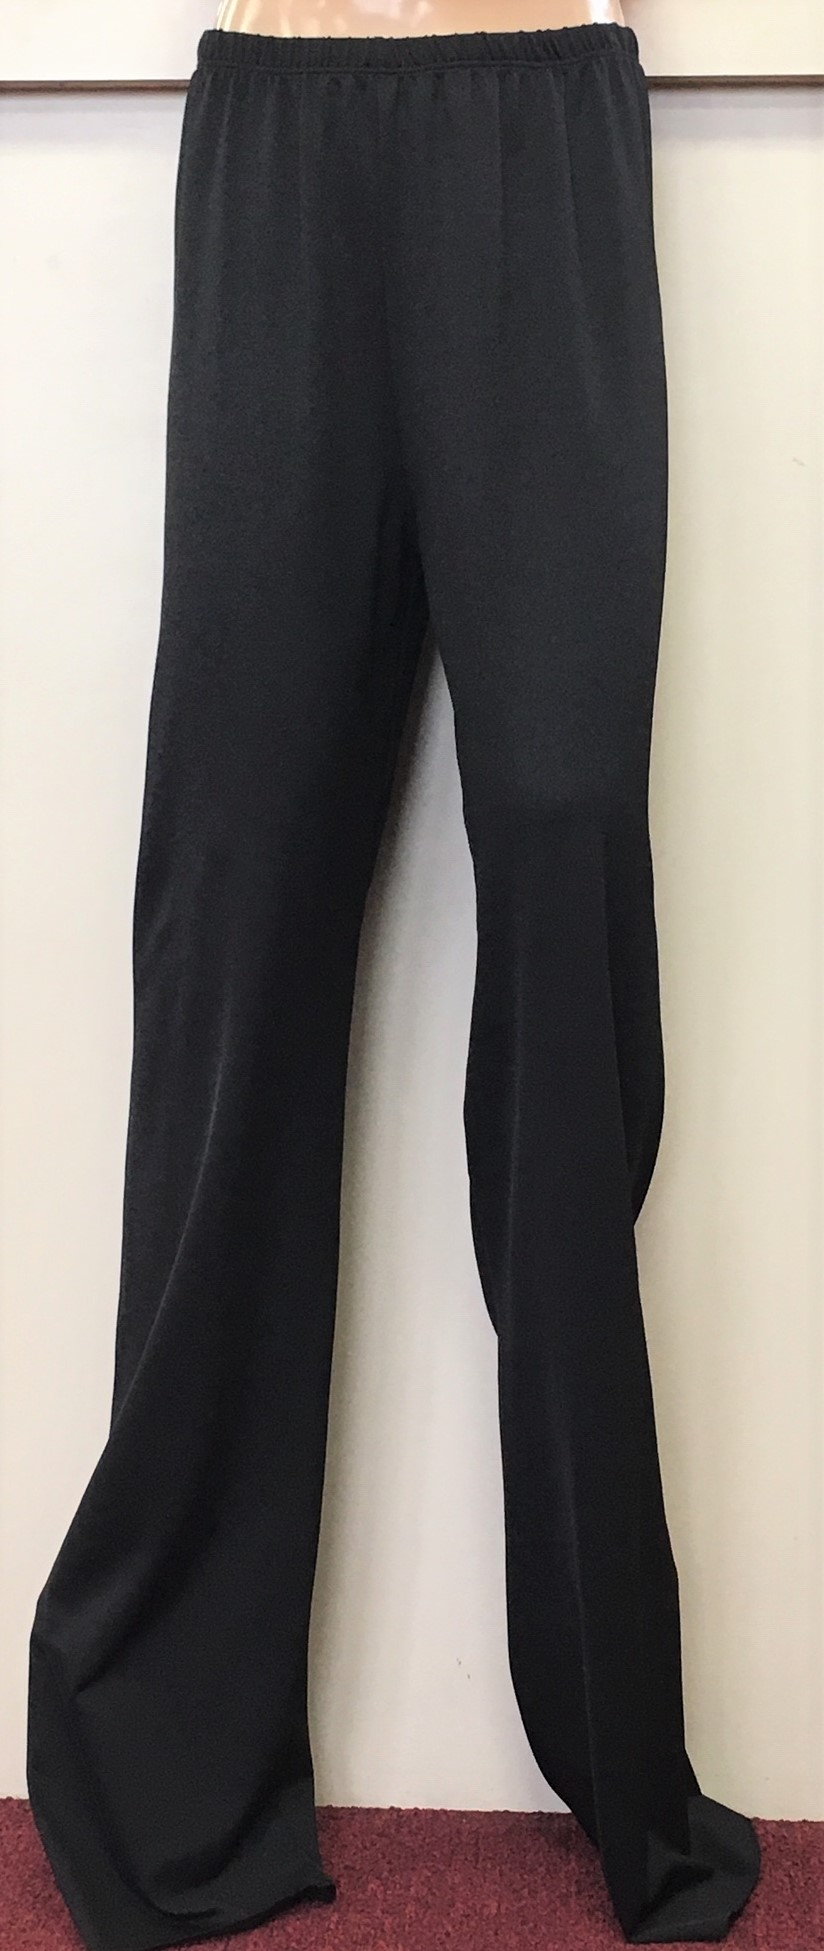 Bodywrappers Adult Hip Hugger Jazz Pants